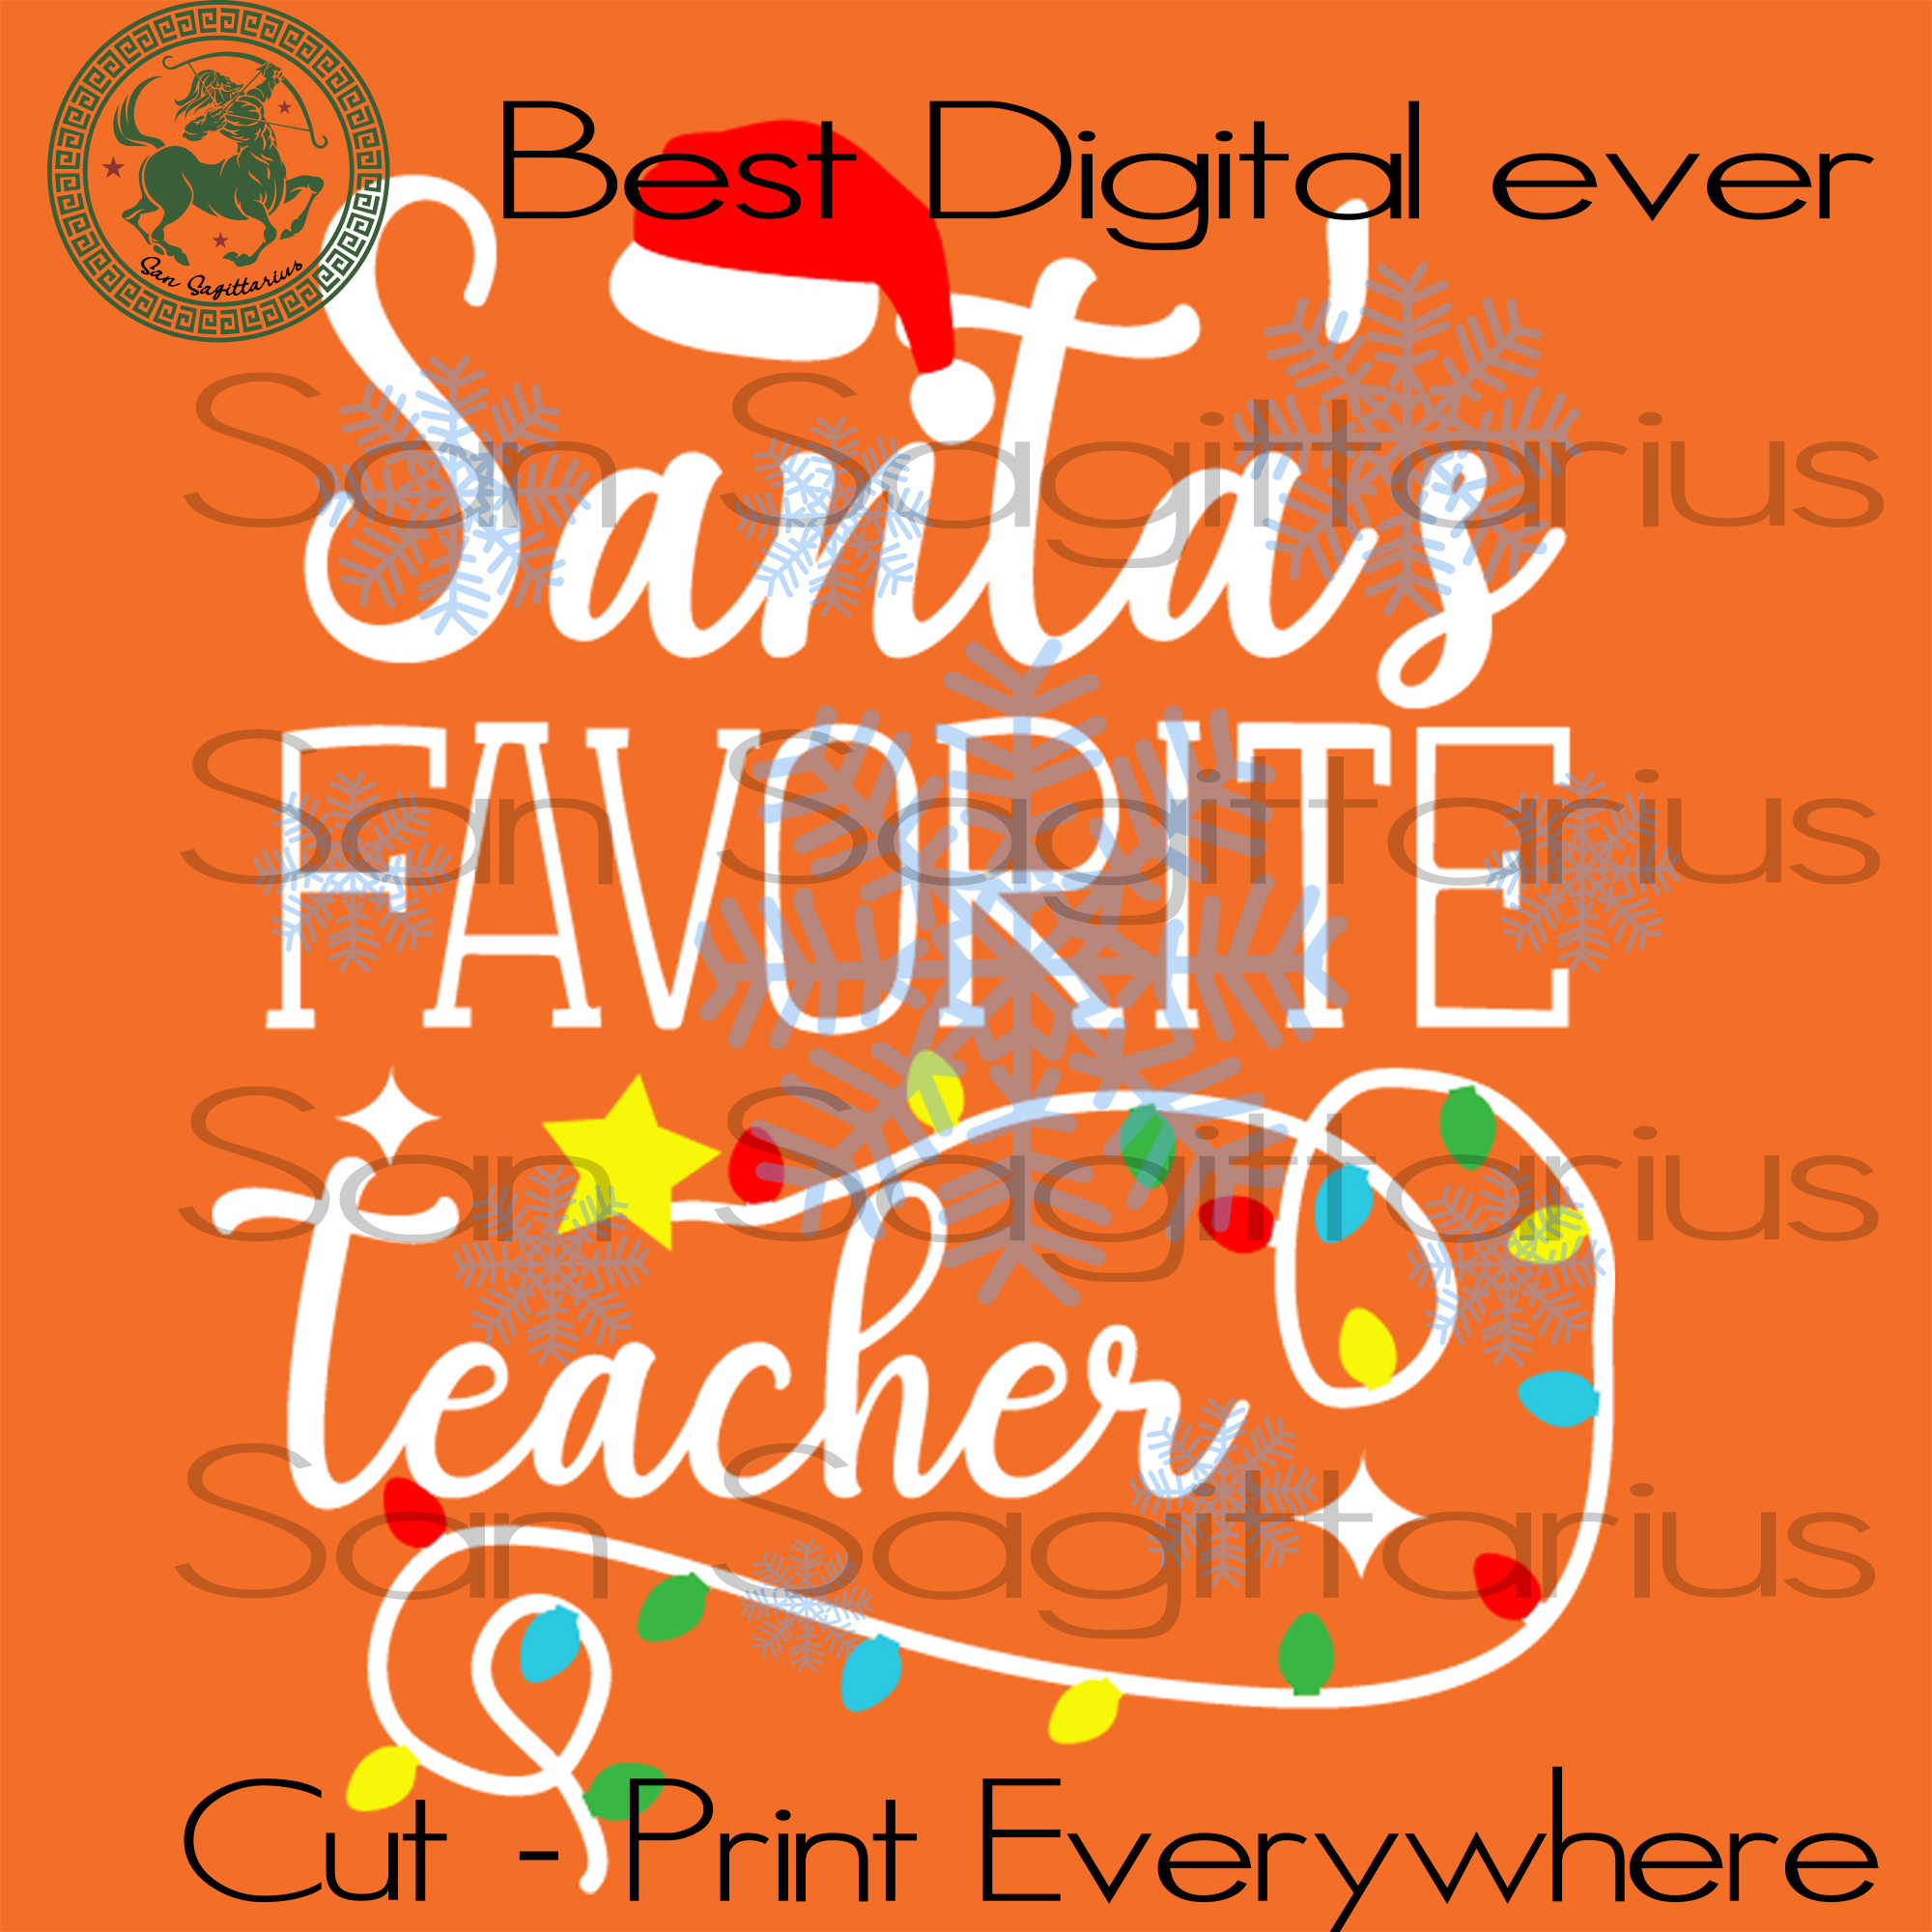 Santa's favorite teacher SVG Files For Cricut Silhouette Instant Download | San Sagittarius